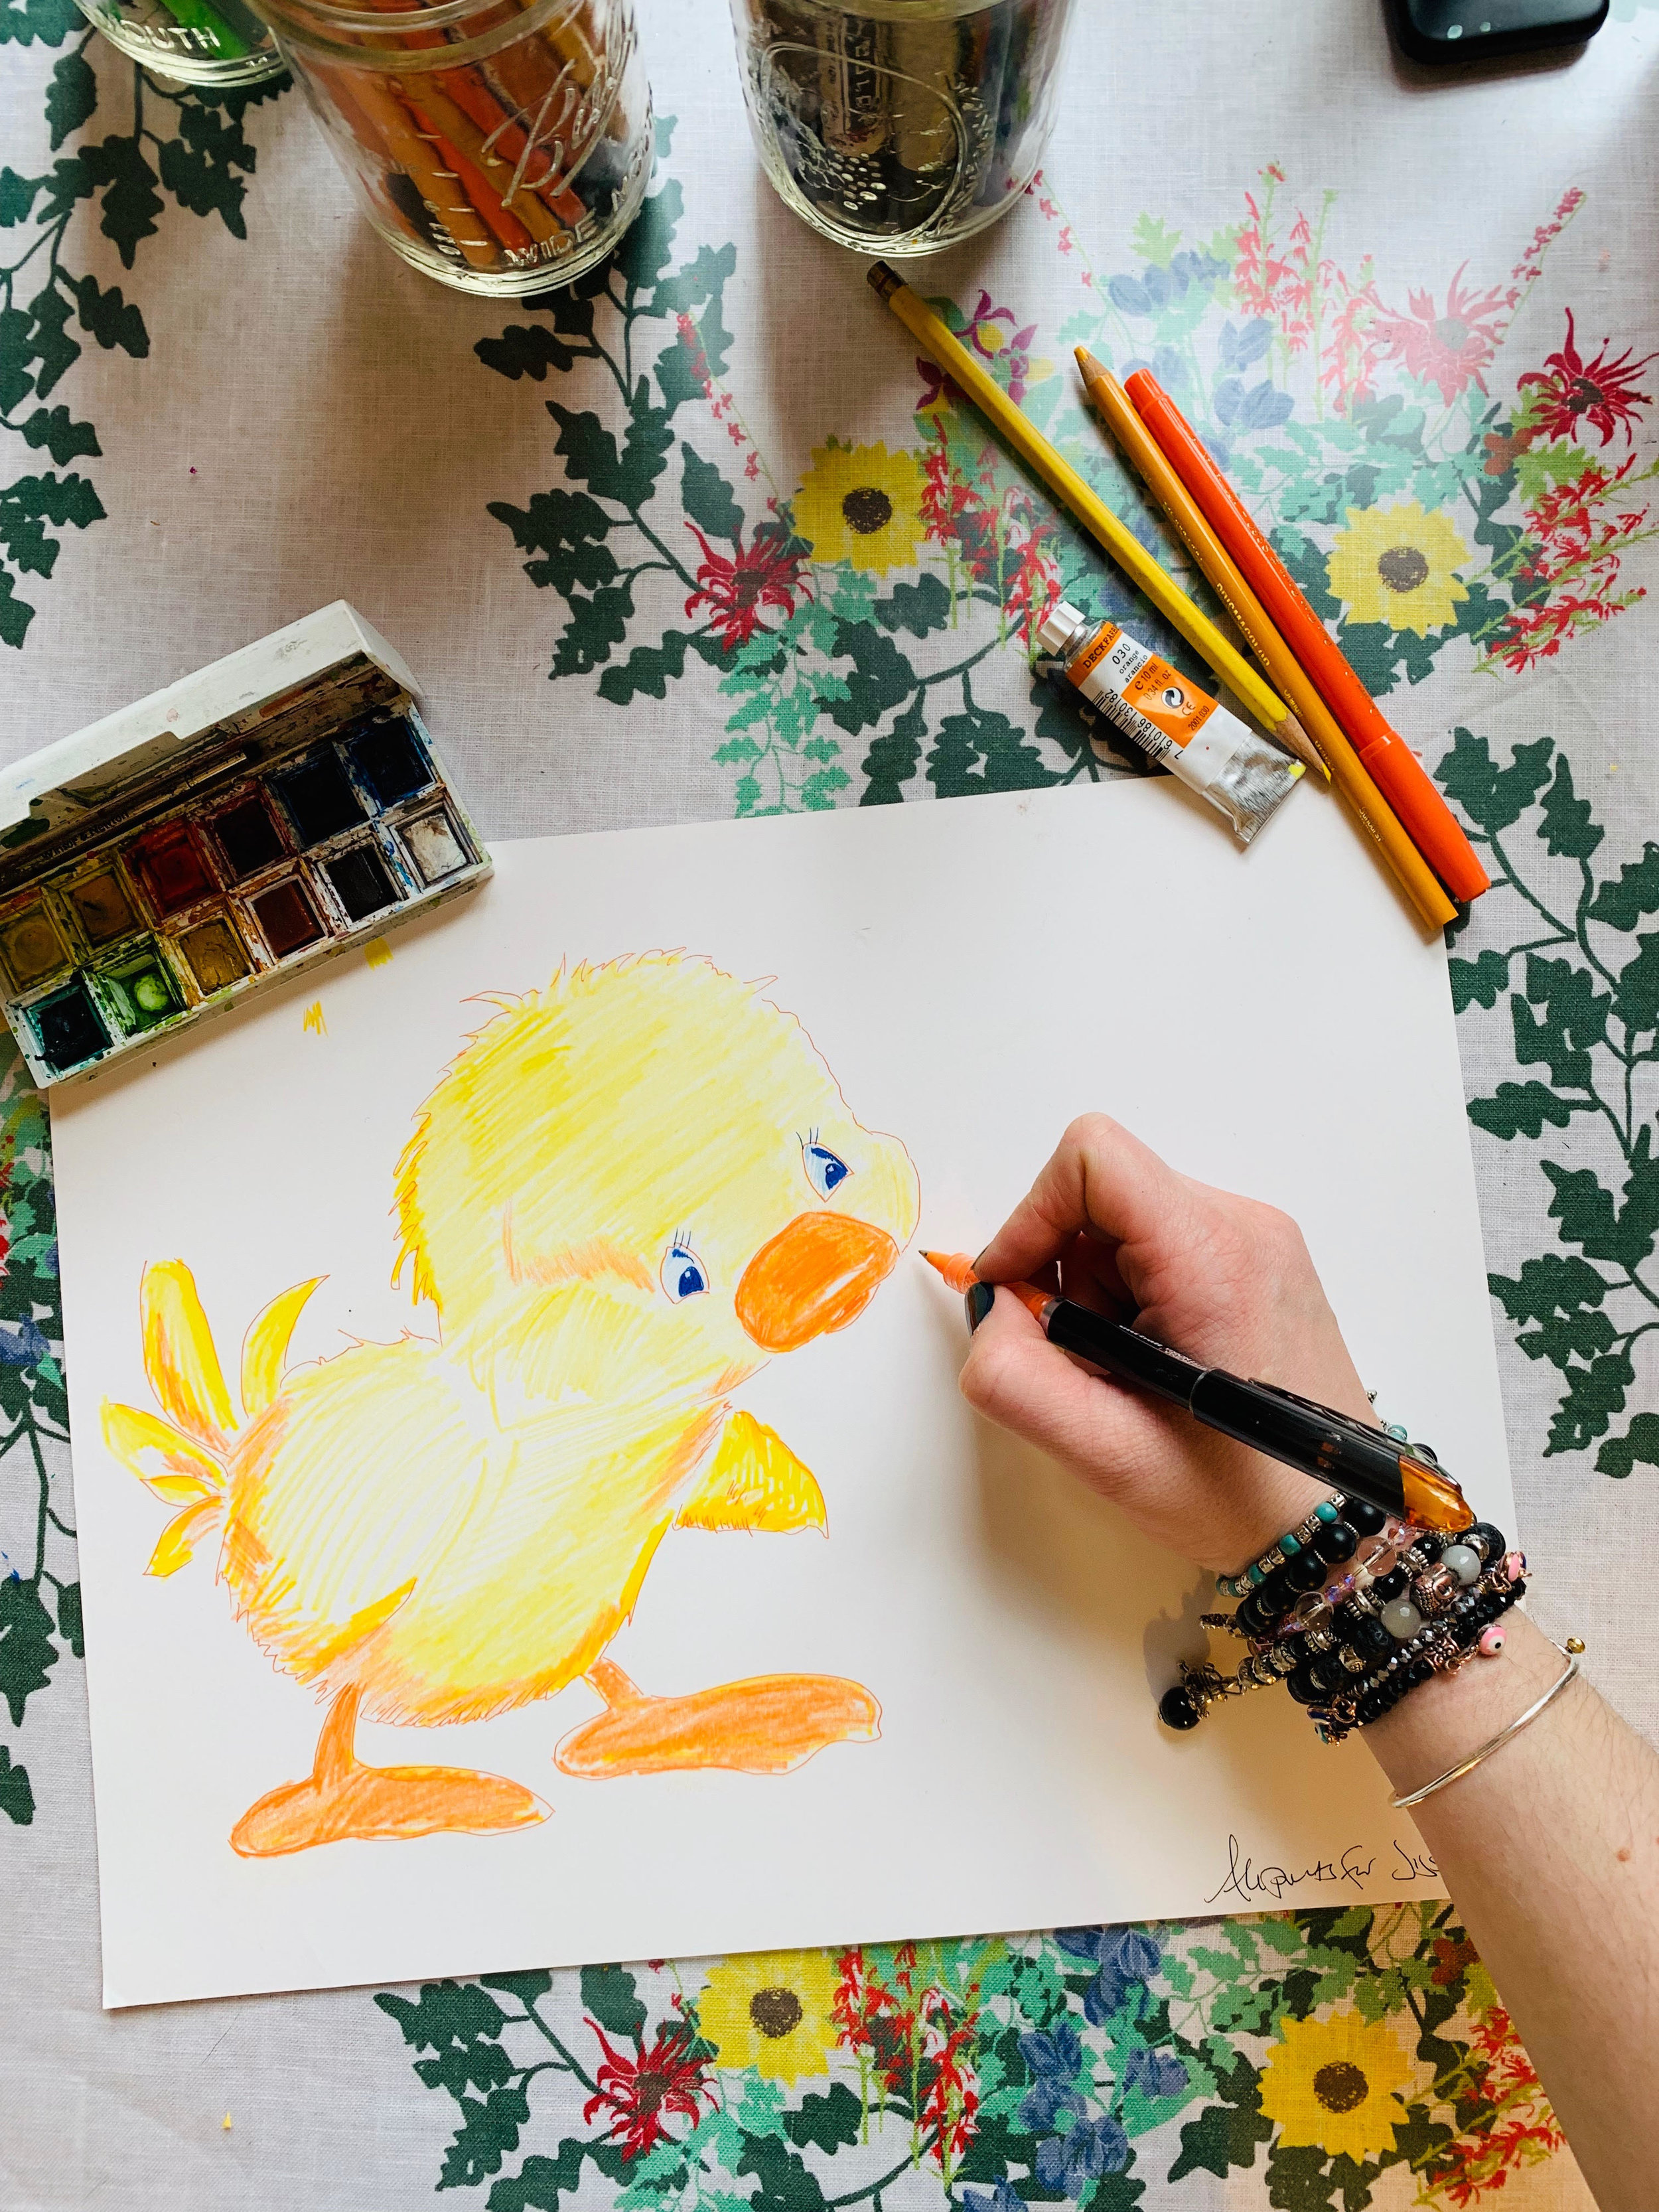 Giggle ducky drawing